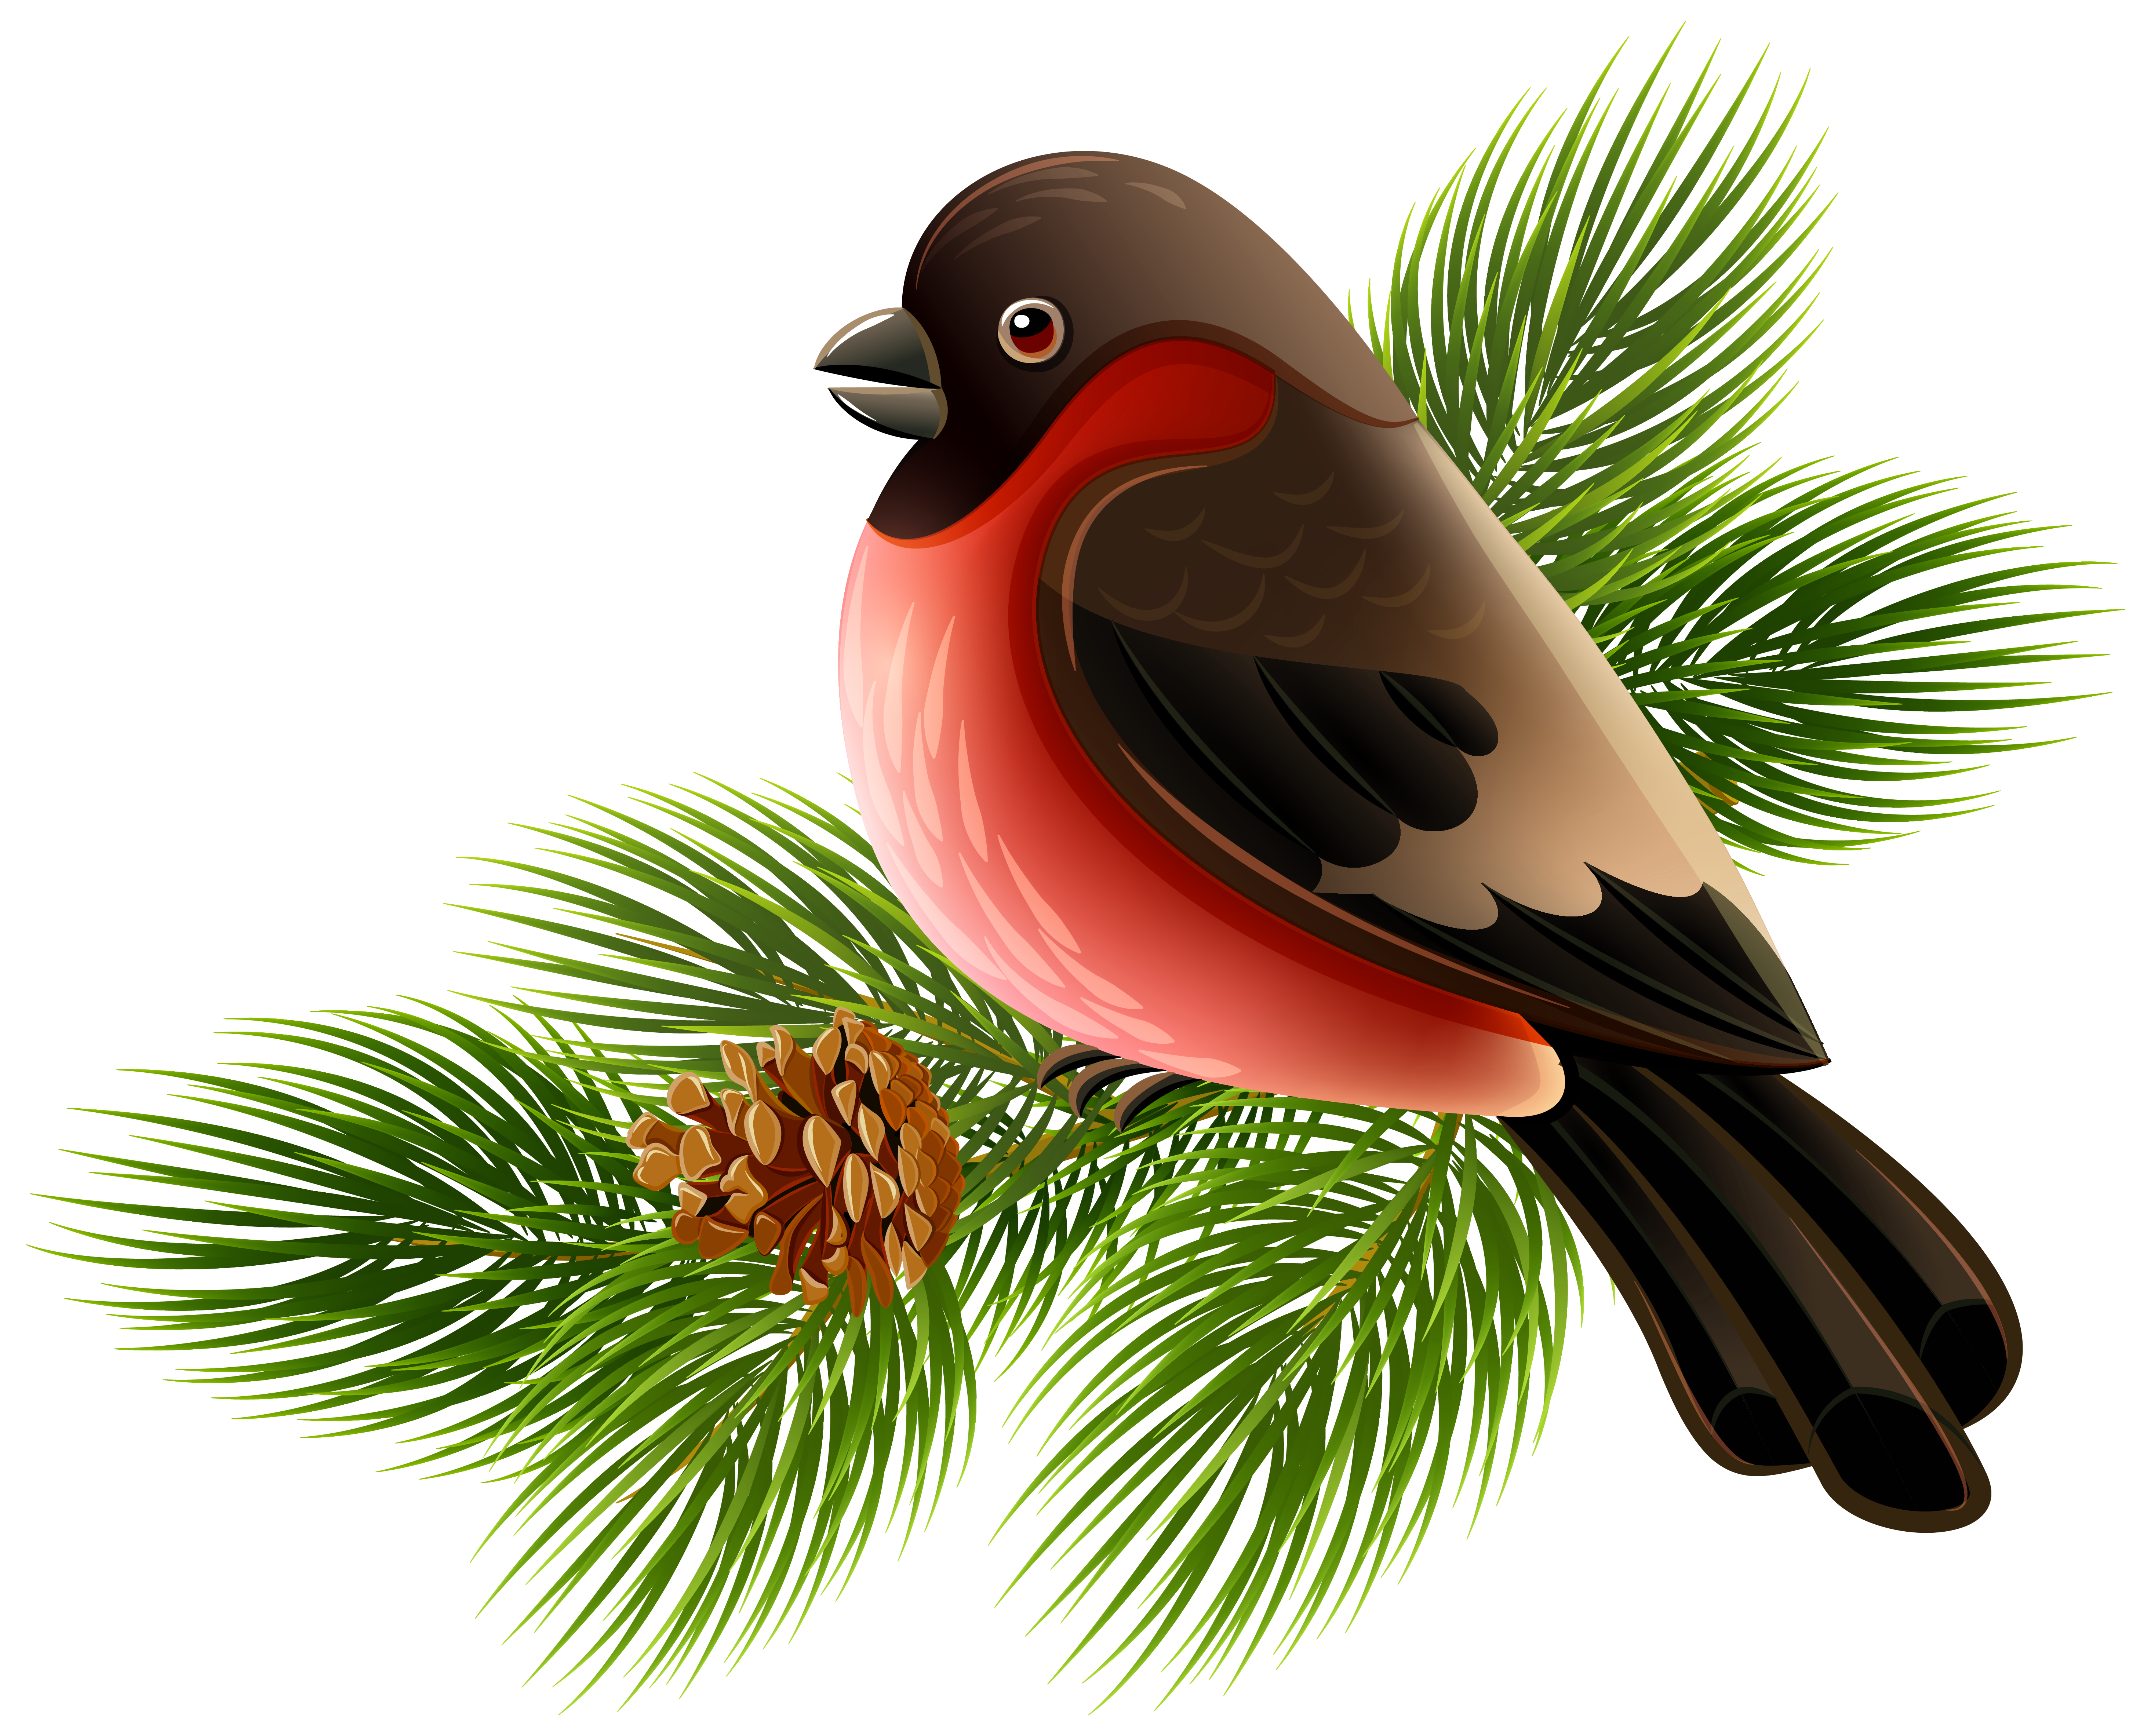 Bird in tree clipart clipart library Bird Clip art - Bird and Pine Branch PNG Clipart Image 5862*4732 ... clipart library